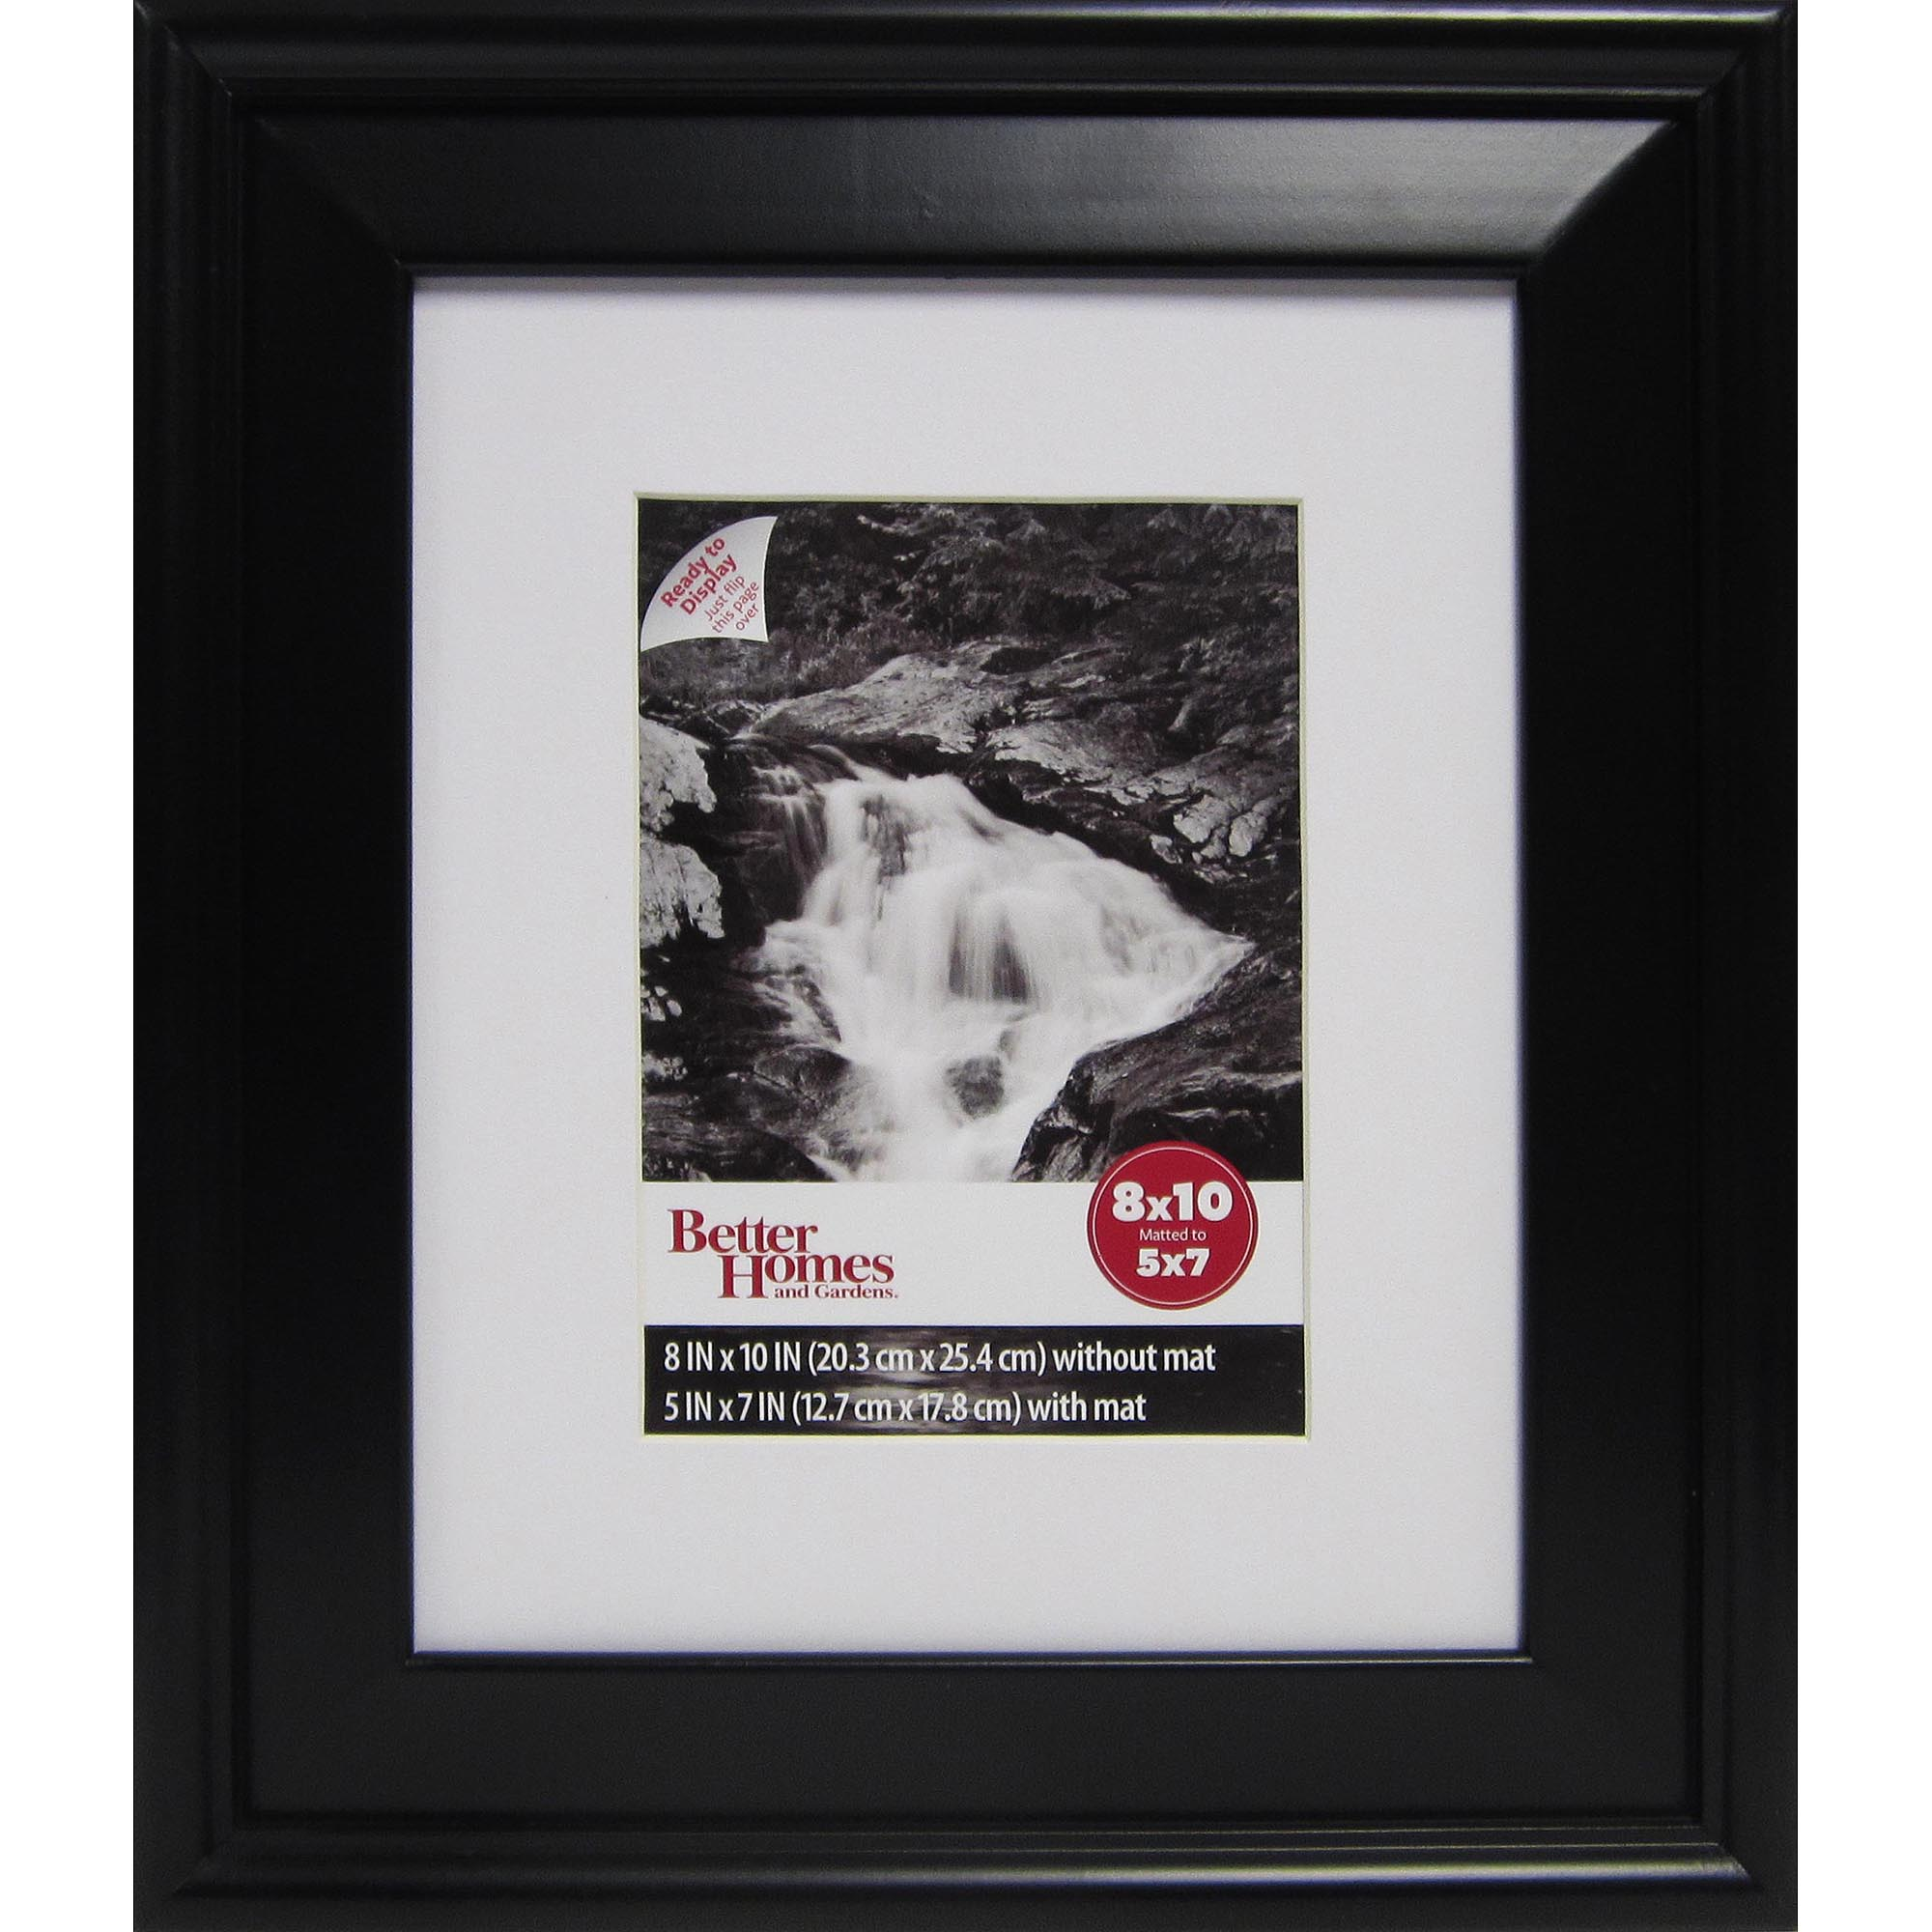 Better Homes and Gardens Family 8x10 Matted Picture Frame